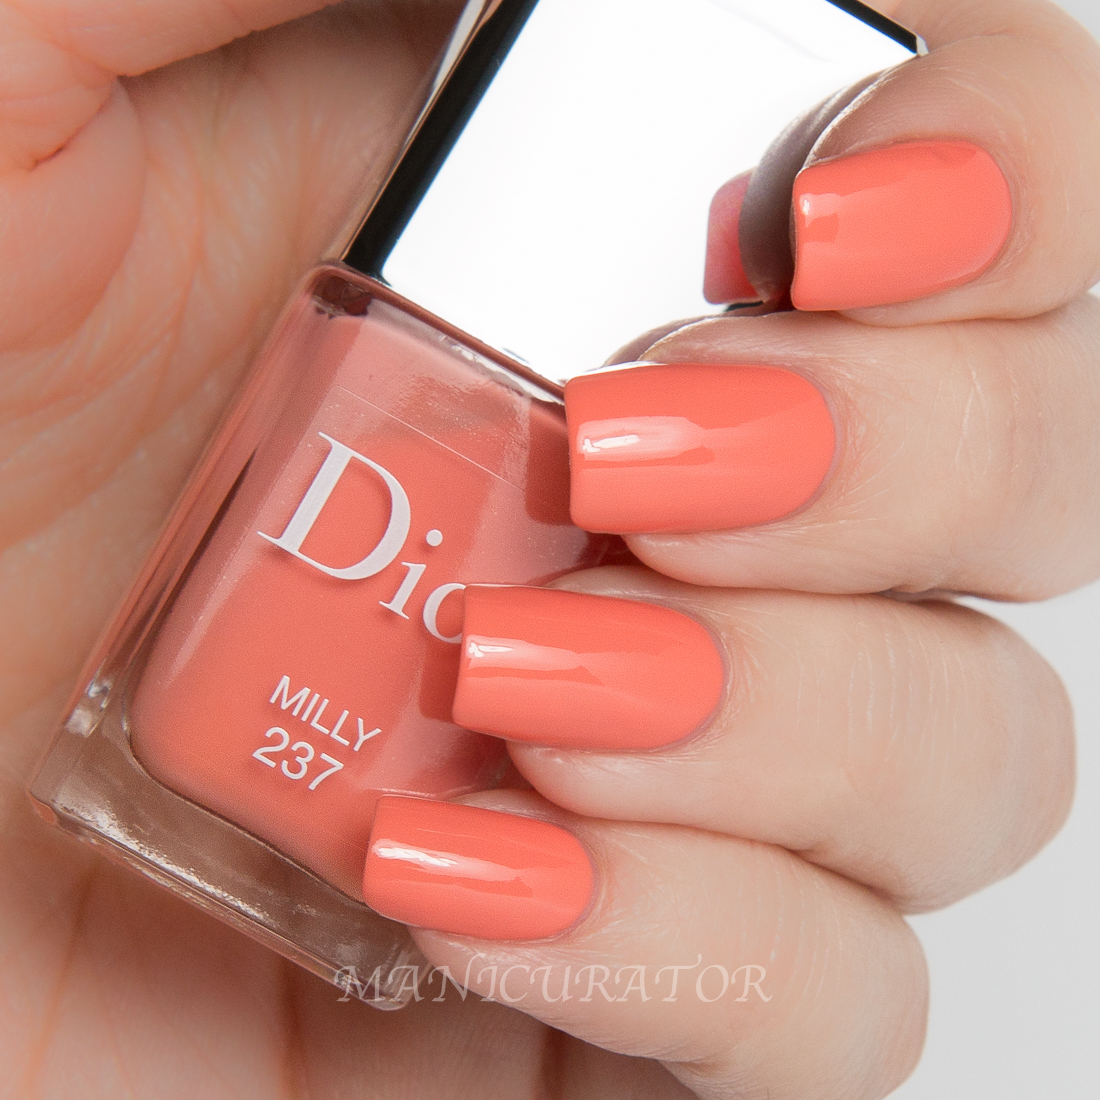 Dior-Gel-Milly-237-Swatch